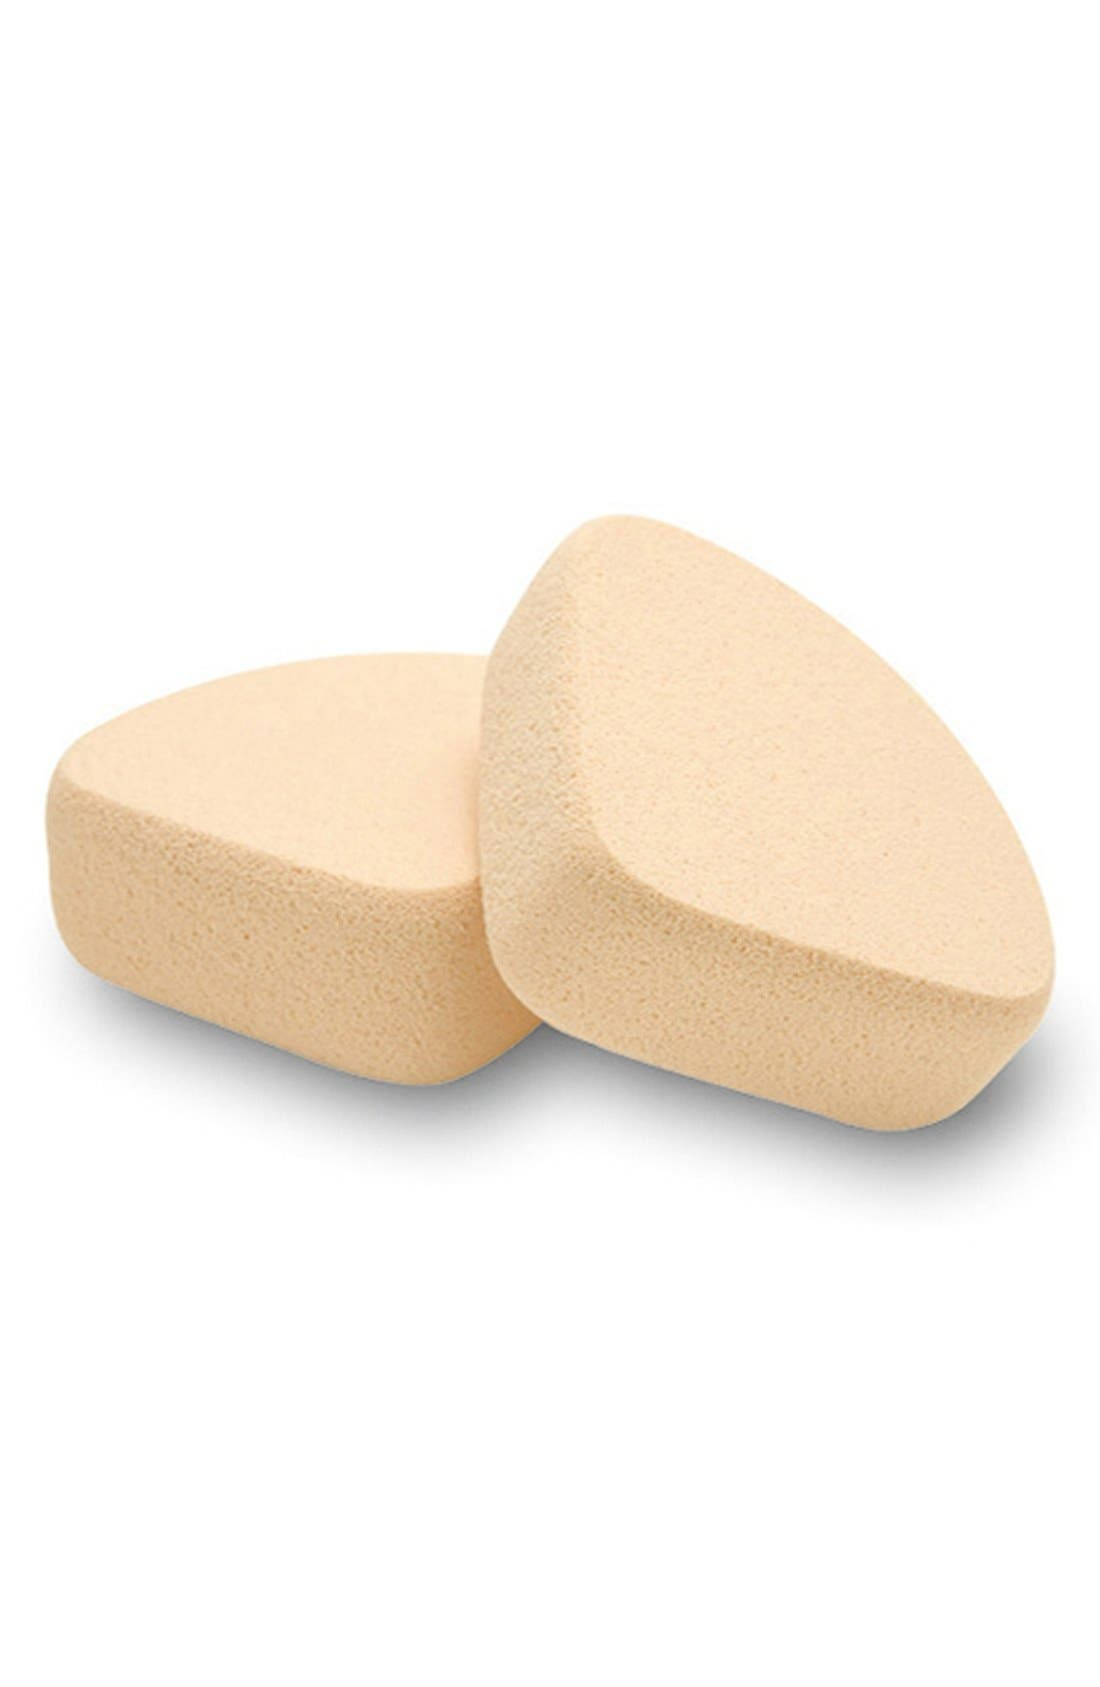 Koh Gen Do Makeup Sponge